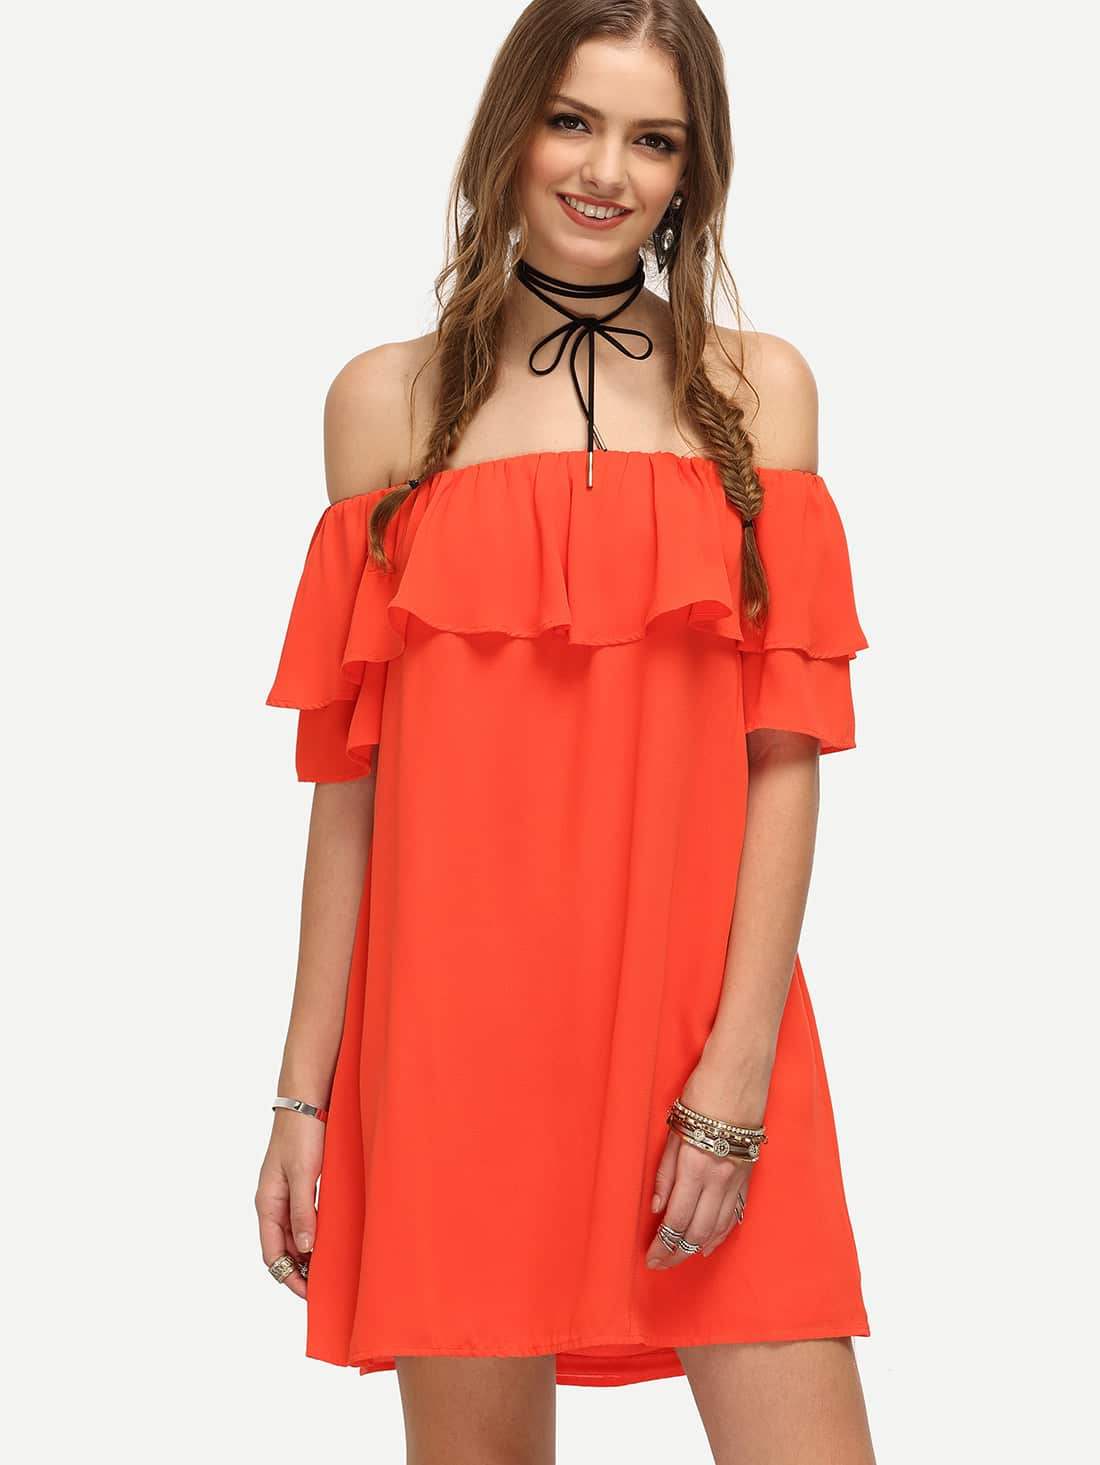 Off Shoulder Frill Detail Shift Dress dress160606757